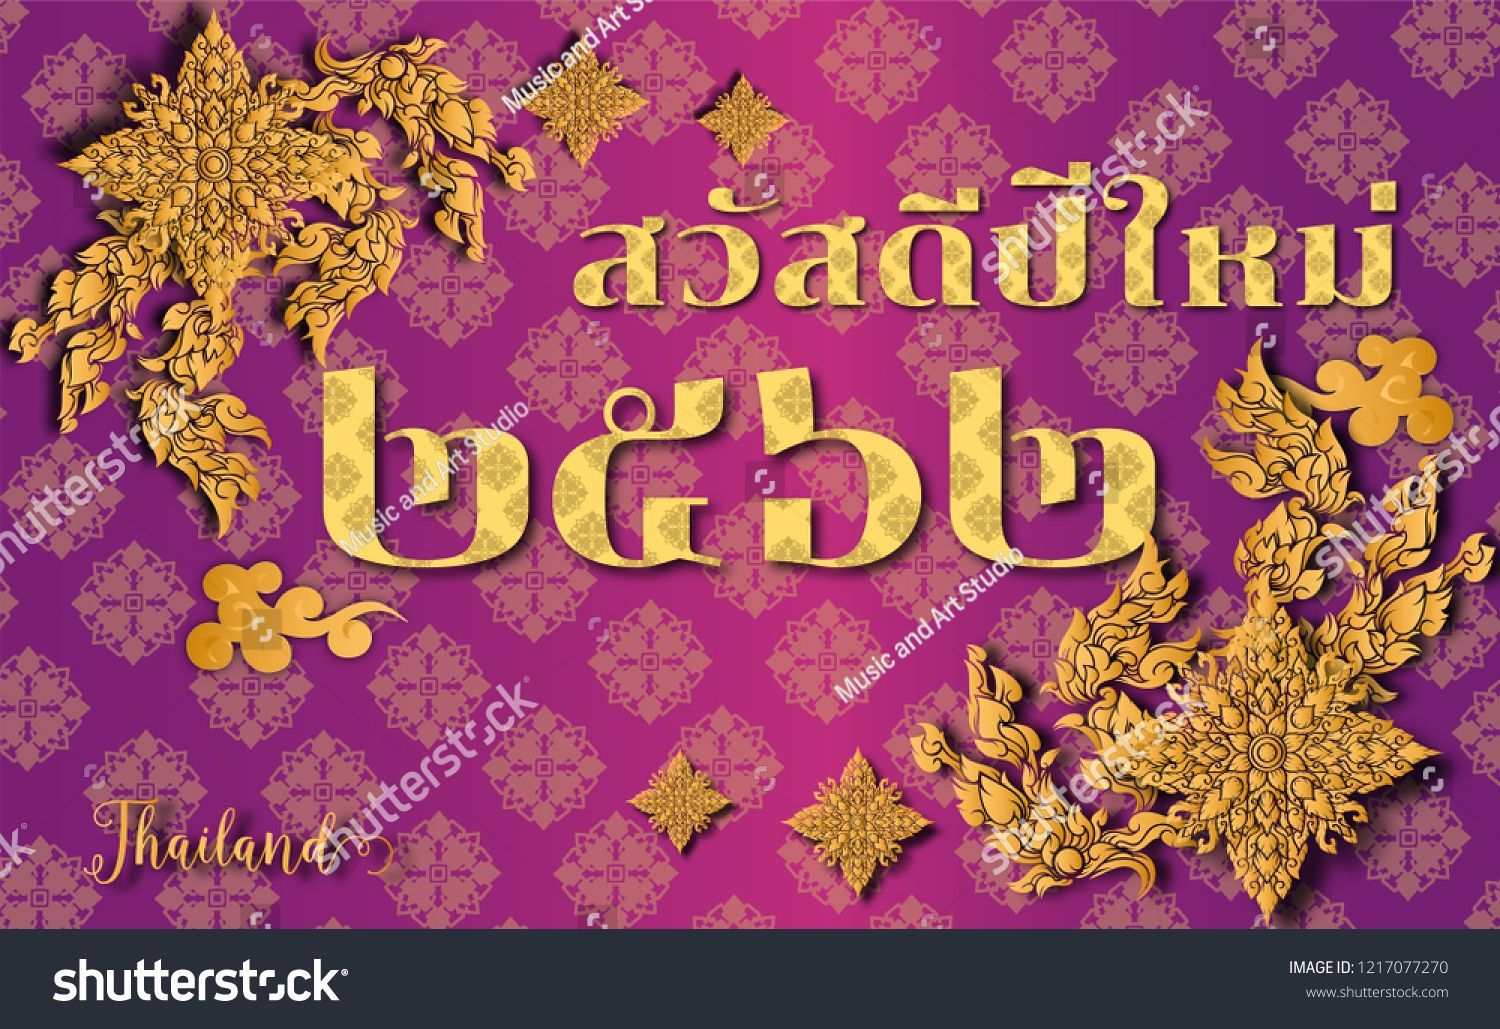 thai traditional stylevector illustration for travel in thailandpostergreeting card flyerbrochureinvitation cardthai translation happy new year